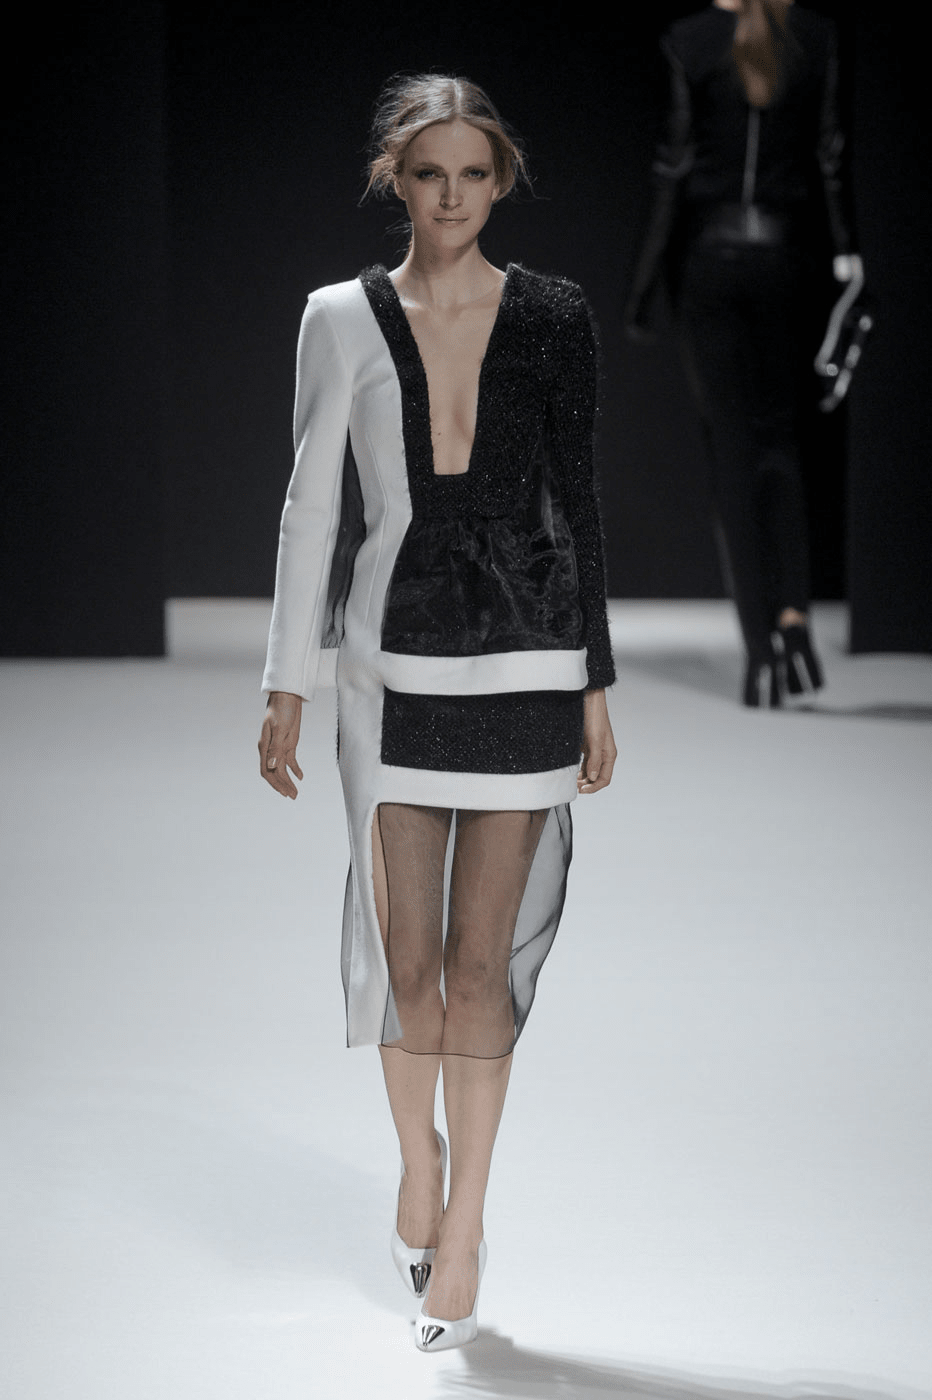 File:Pedro Lourenço Fall 2011 Dress.png